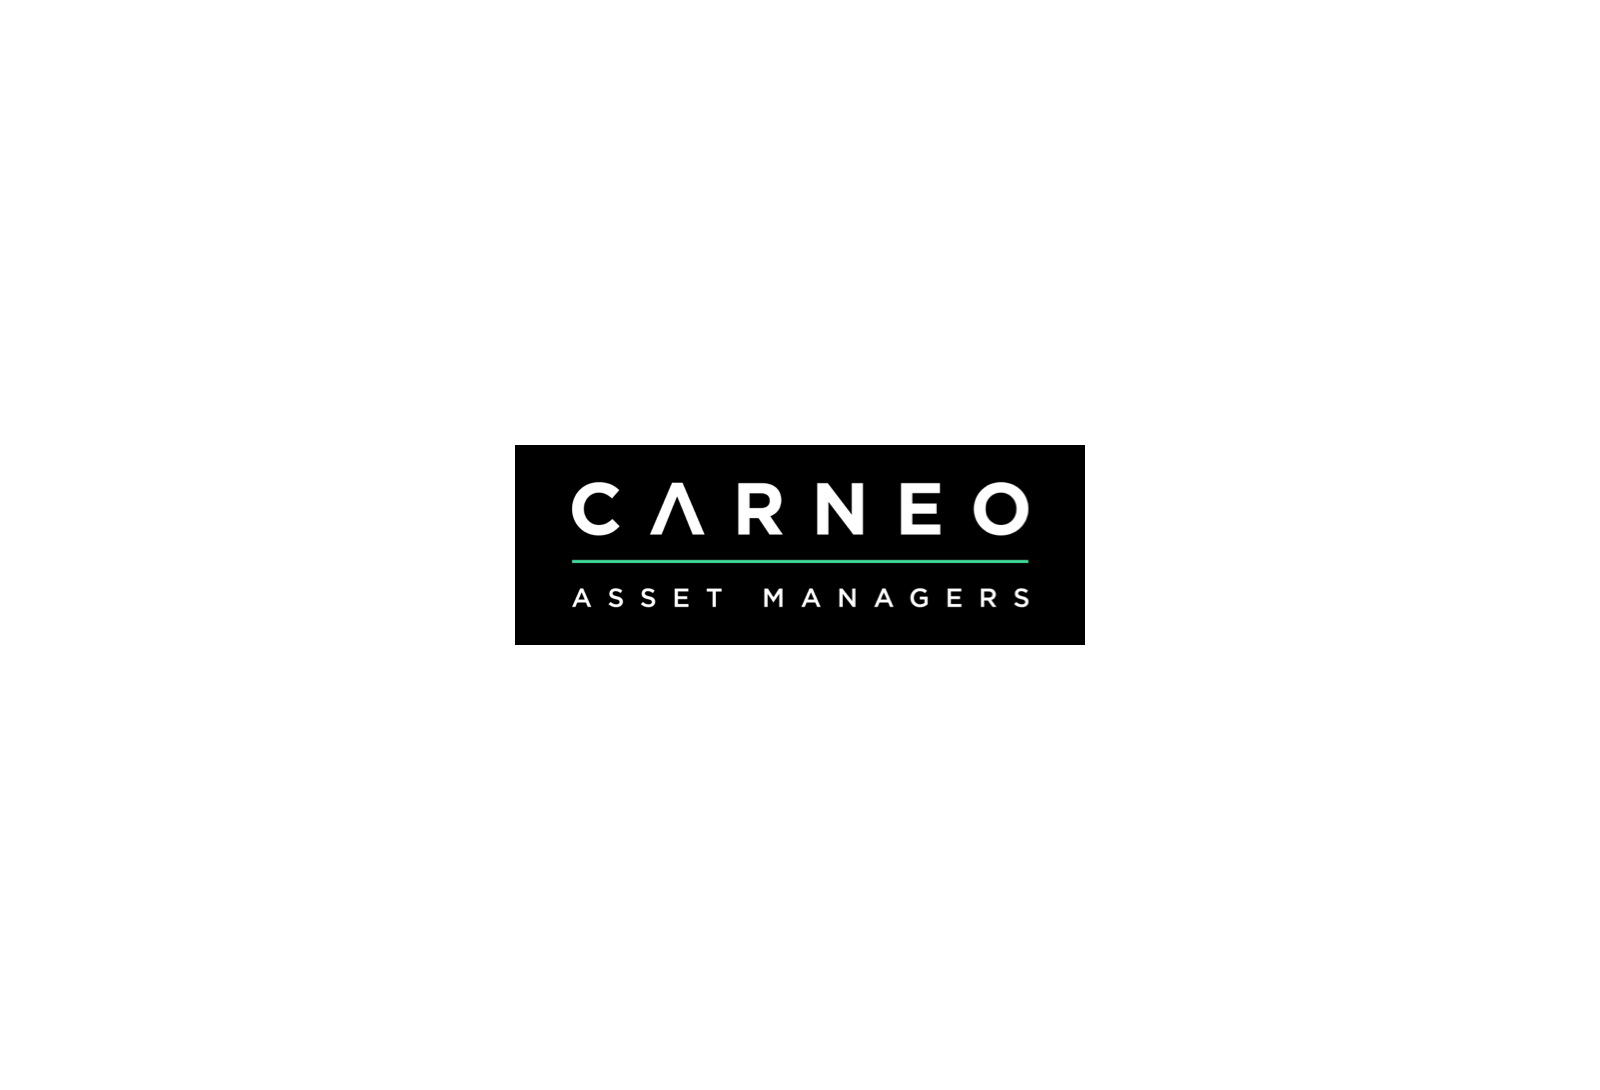 Carneo Asset Management